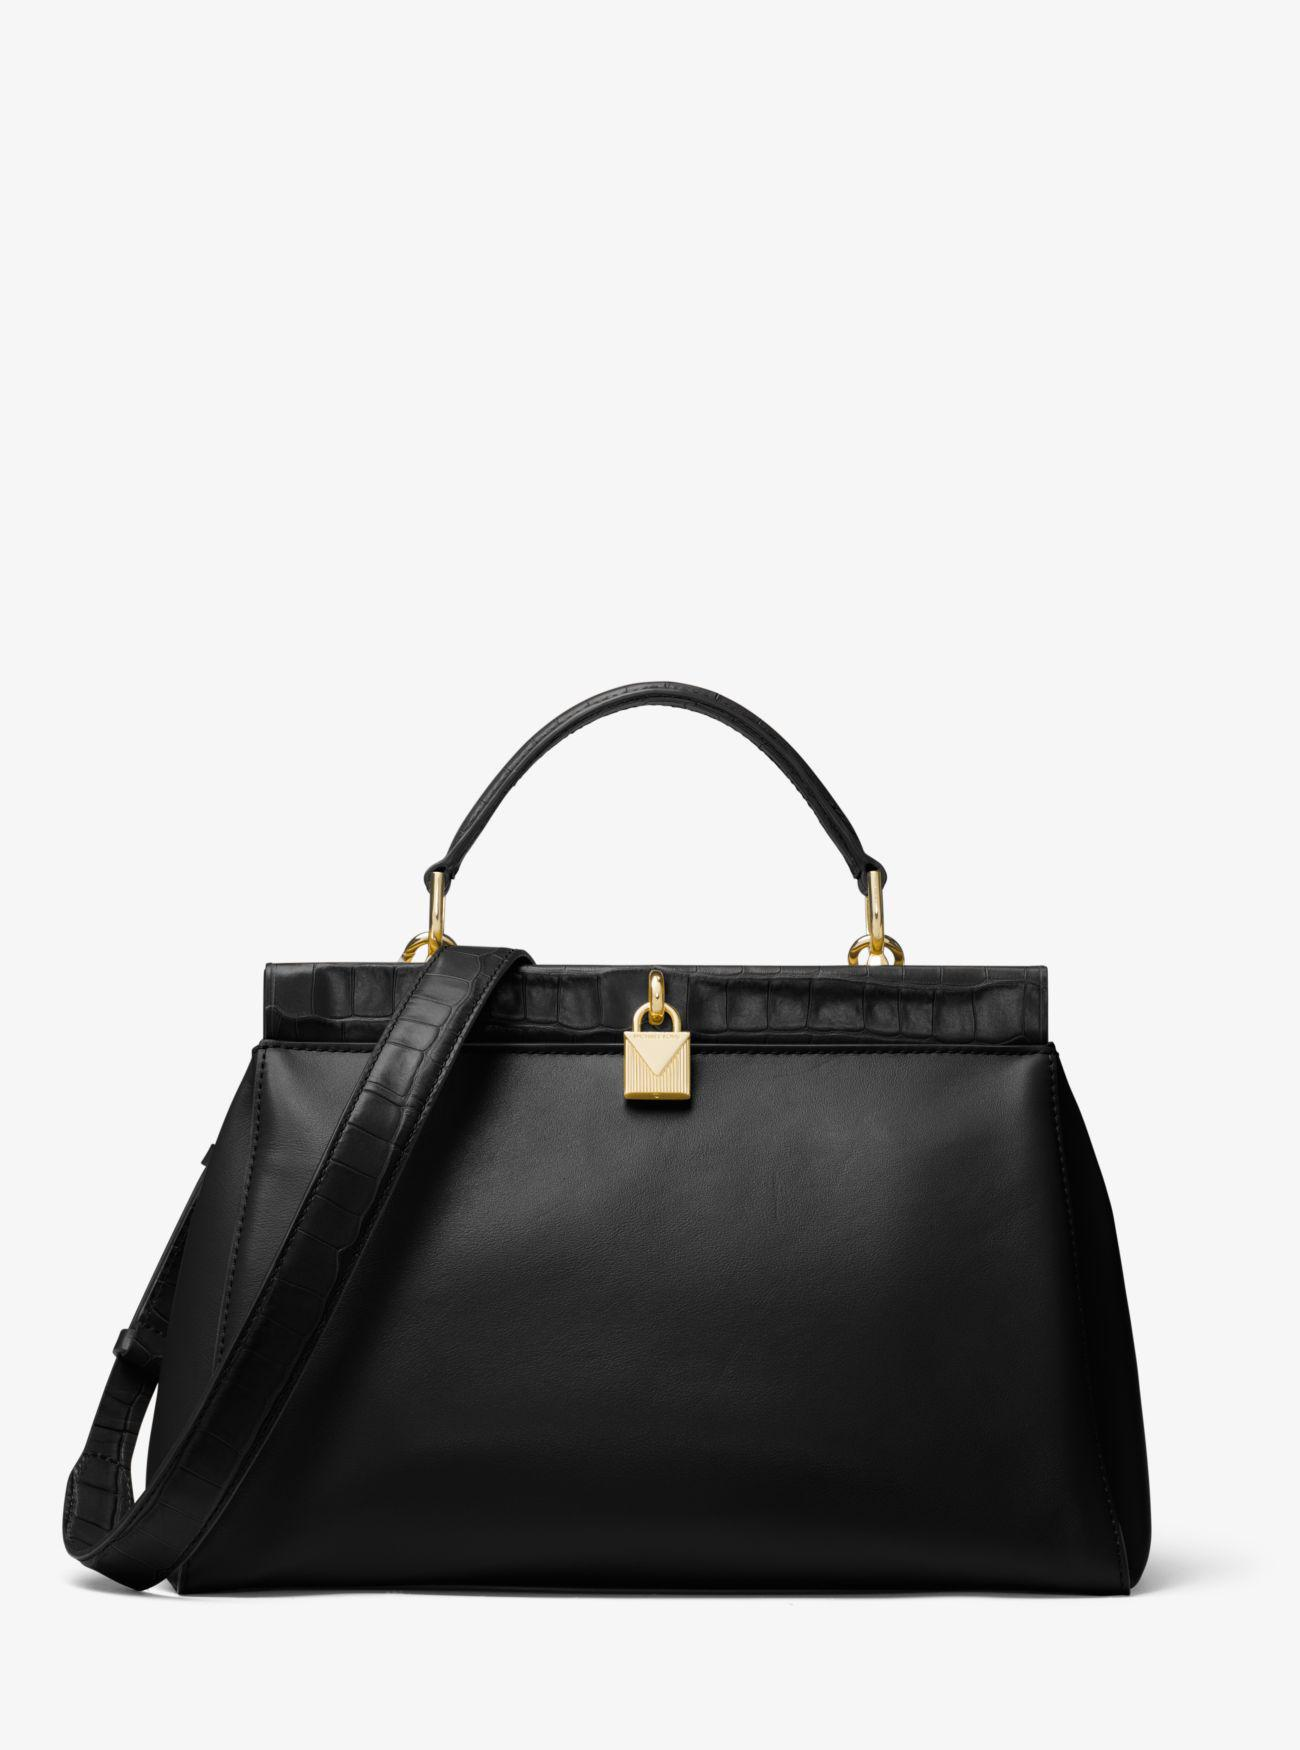 a924a2bca52286 Michael Kors Gramercy Leather Frame Satchel in Black - Lyst